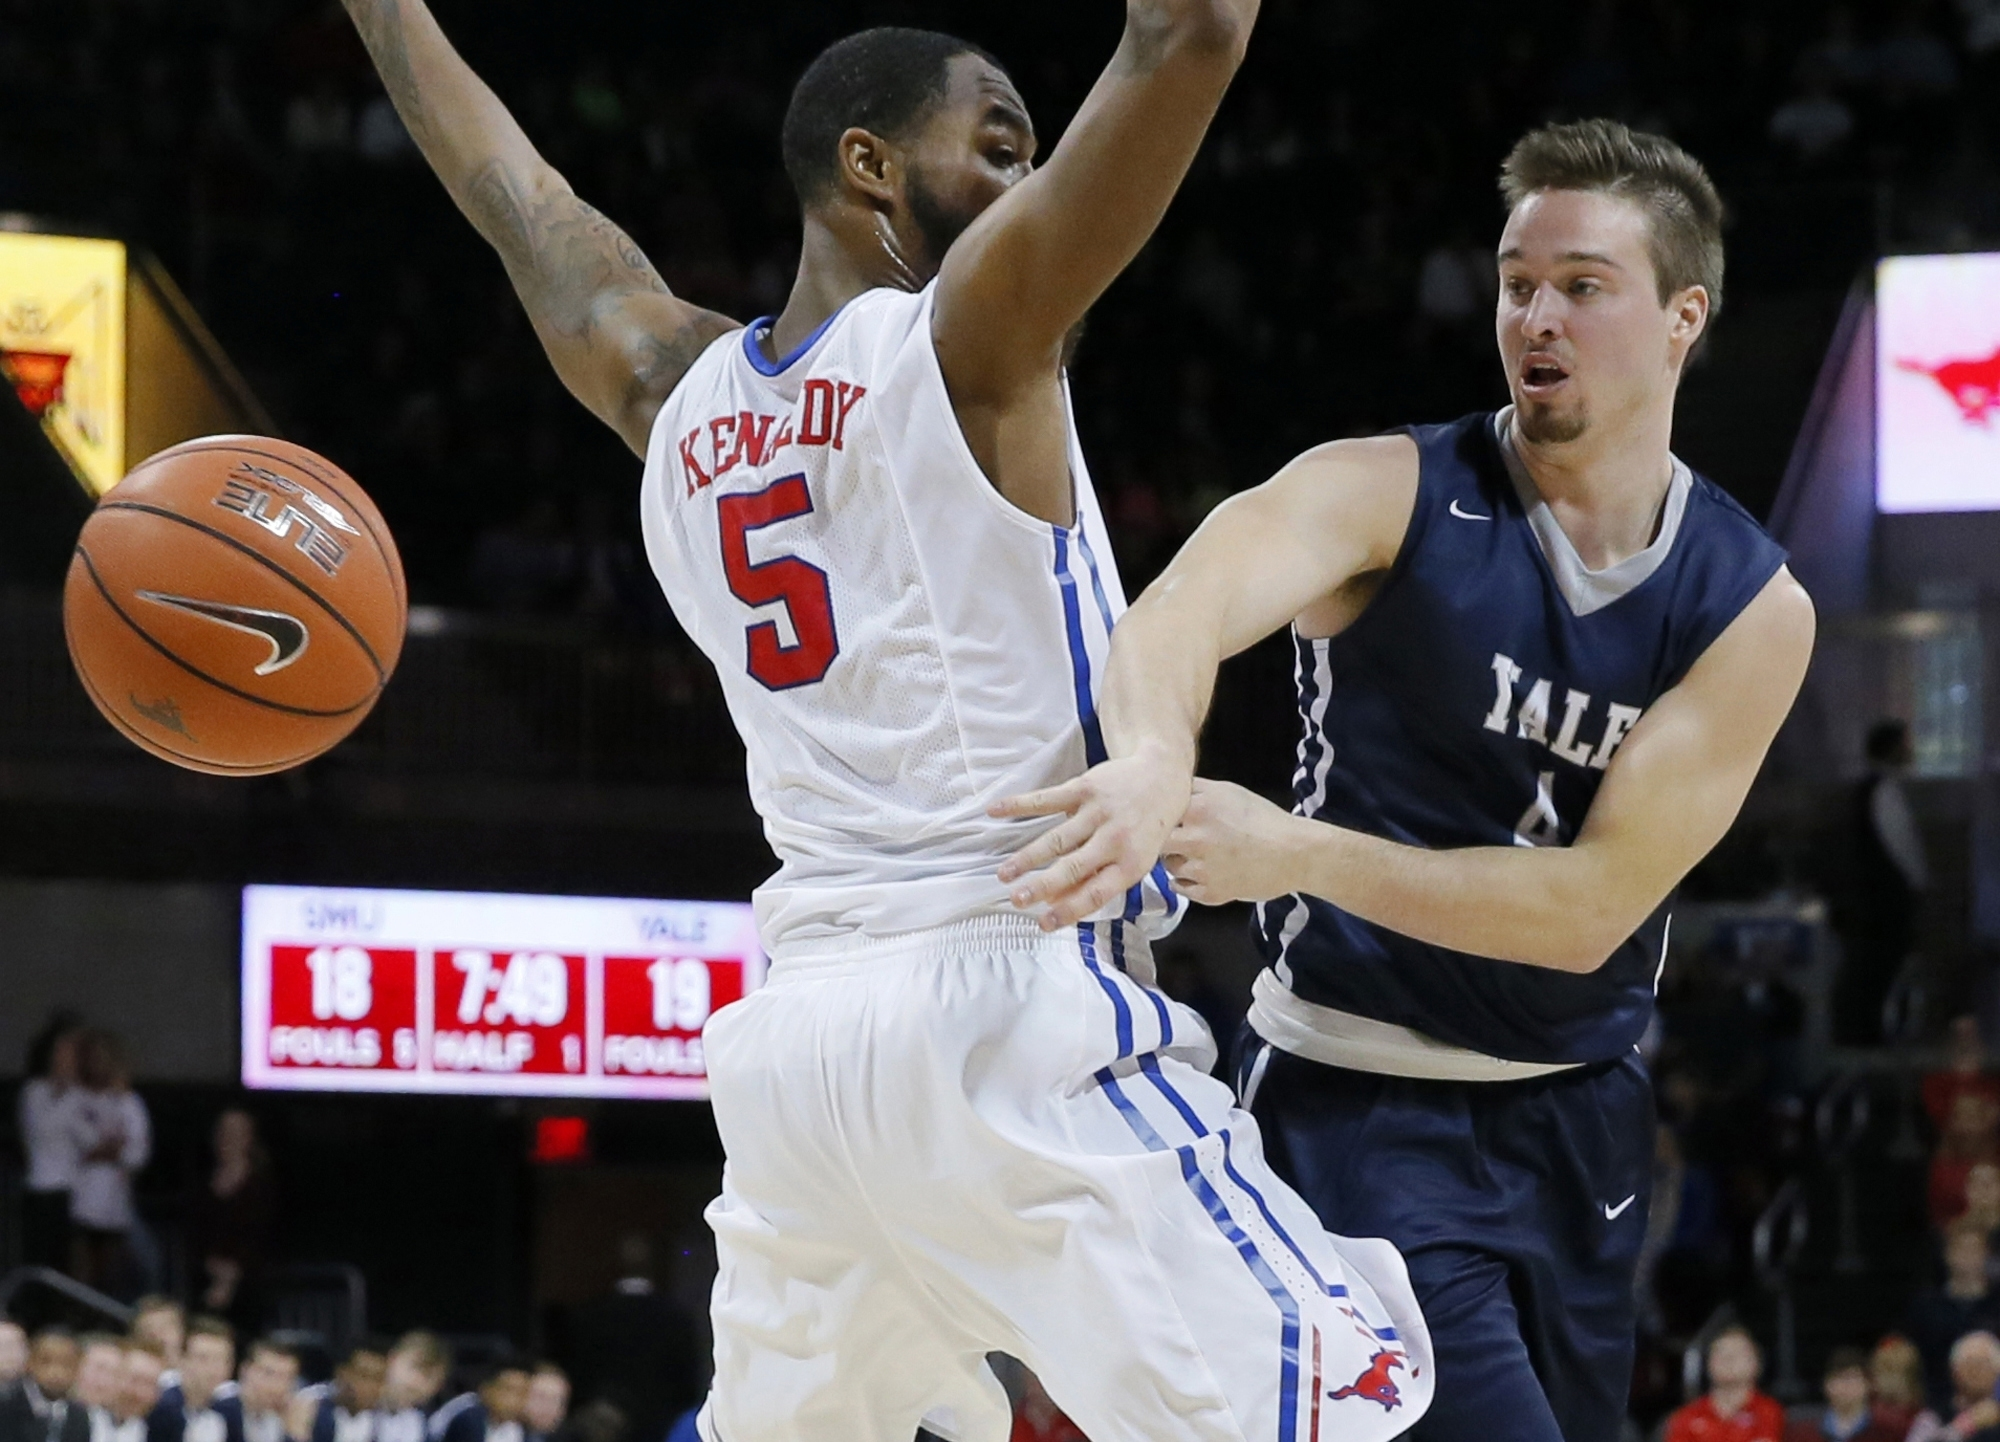 FILE - In this Nov. 22, 2015 FILE photo, Yale's Jack Montague, right, passes the ball around SMU's Markus Kennedy during an NCAA college basketball game in Dallas. Montague's attorney said he was expelled from Yale in Feb. 2016, because of a sexual assaul